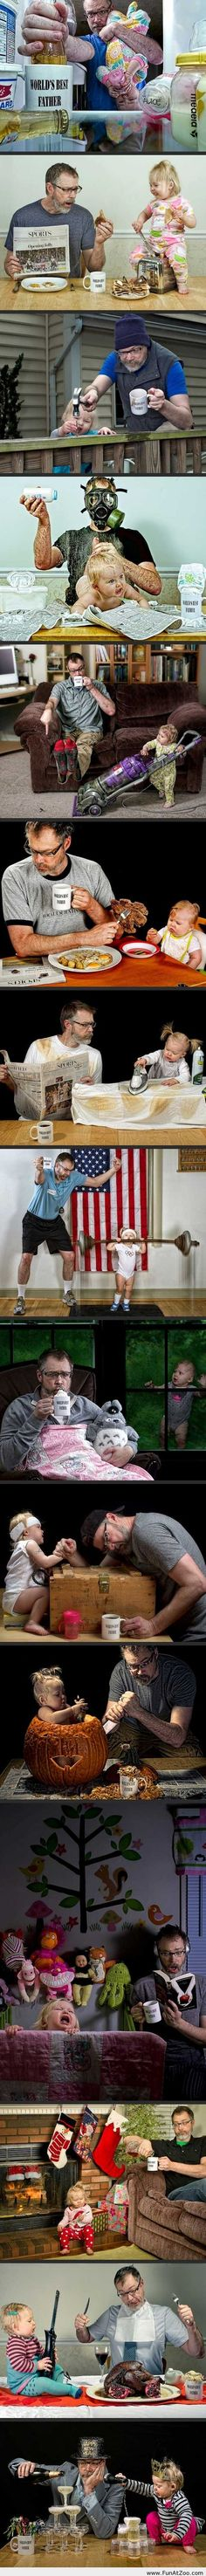 Funny pictures with Father of the year - Funny Picture